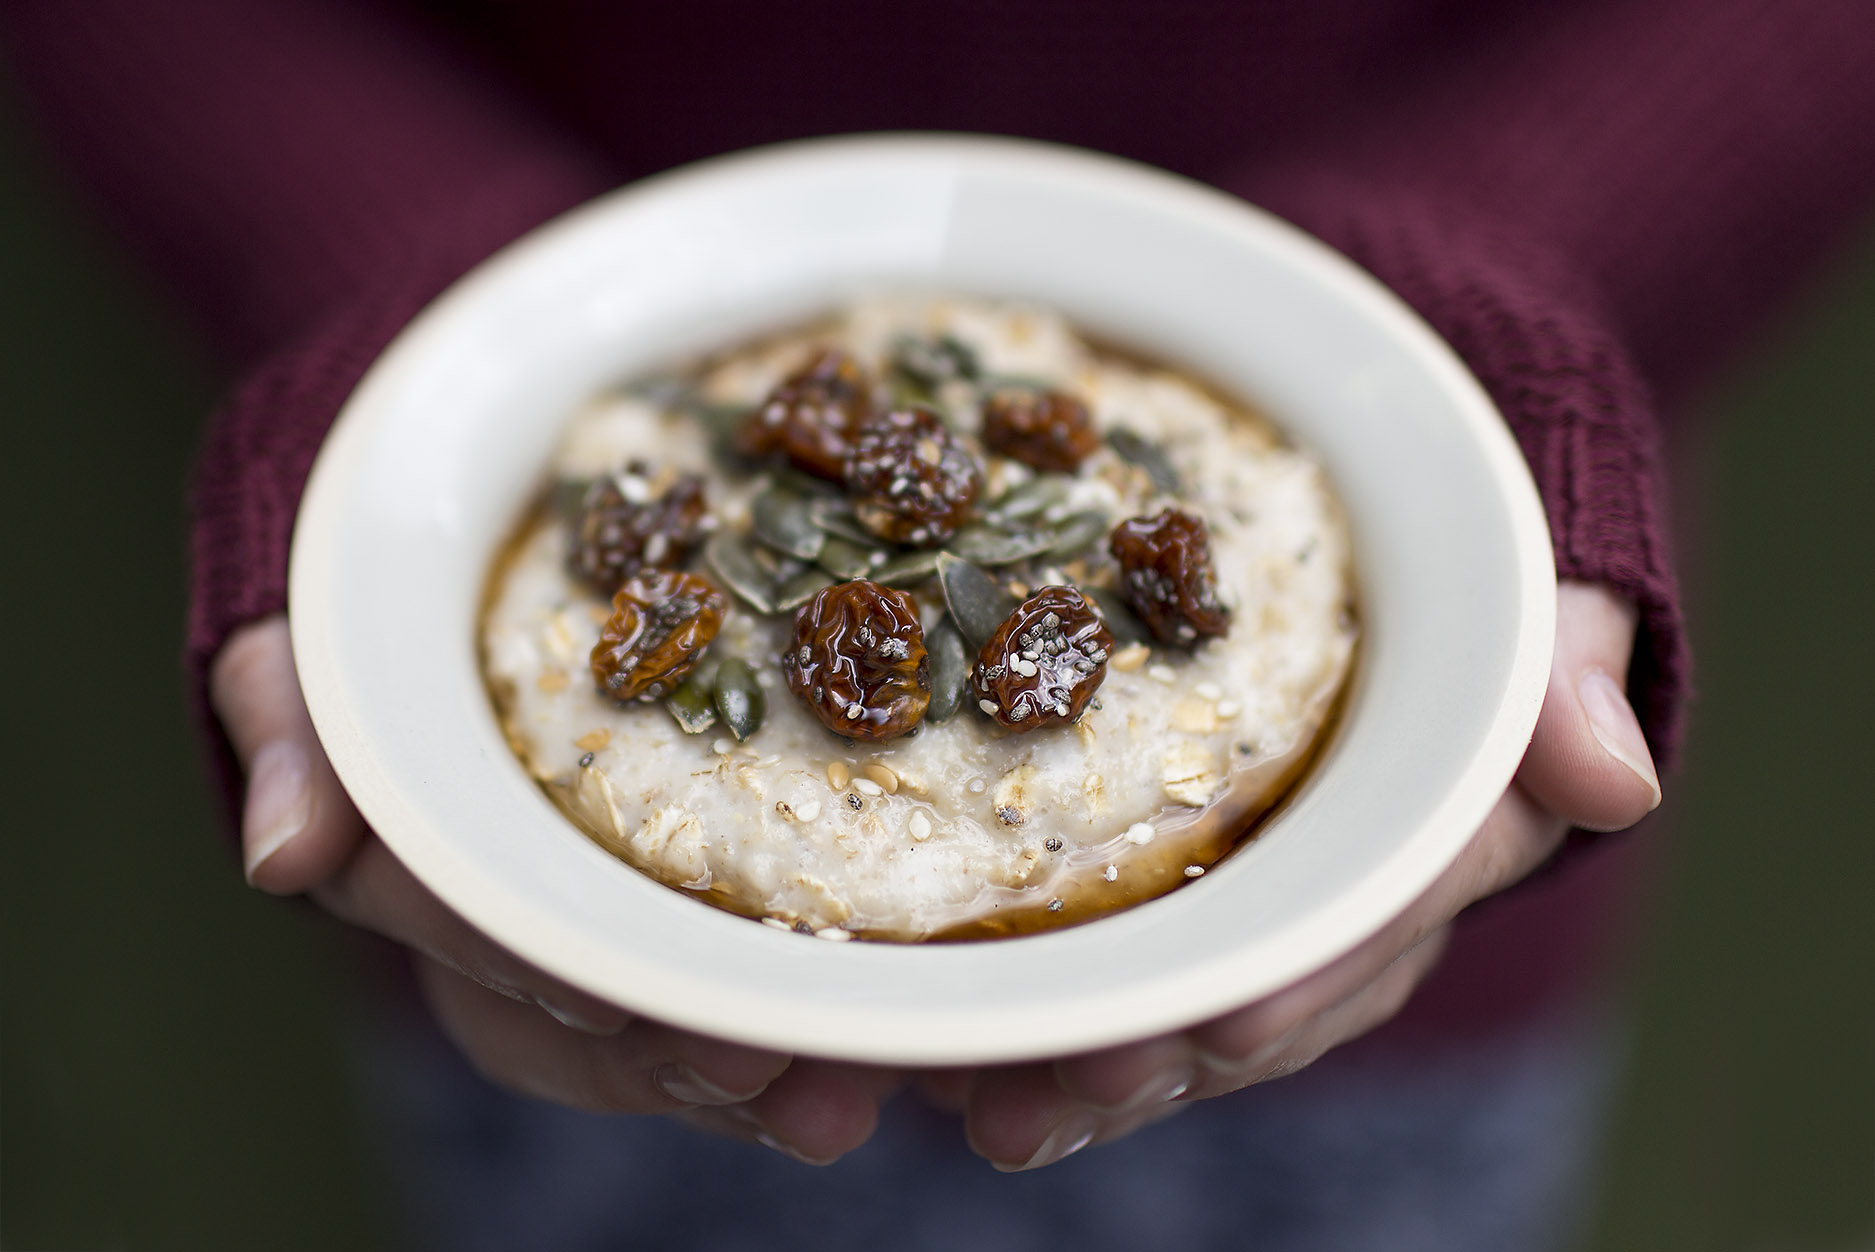 porridge-pod-food-tom-moggach.jpg